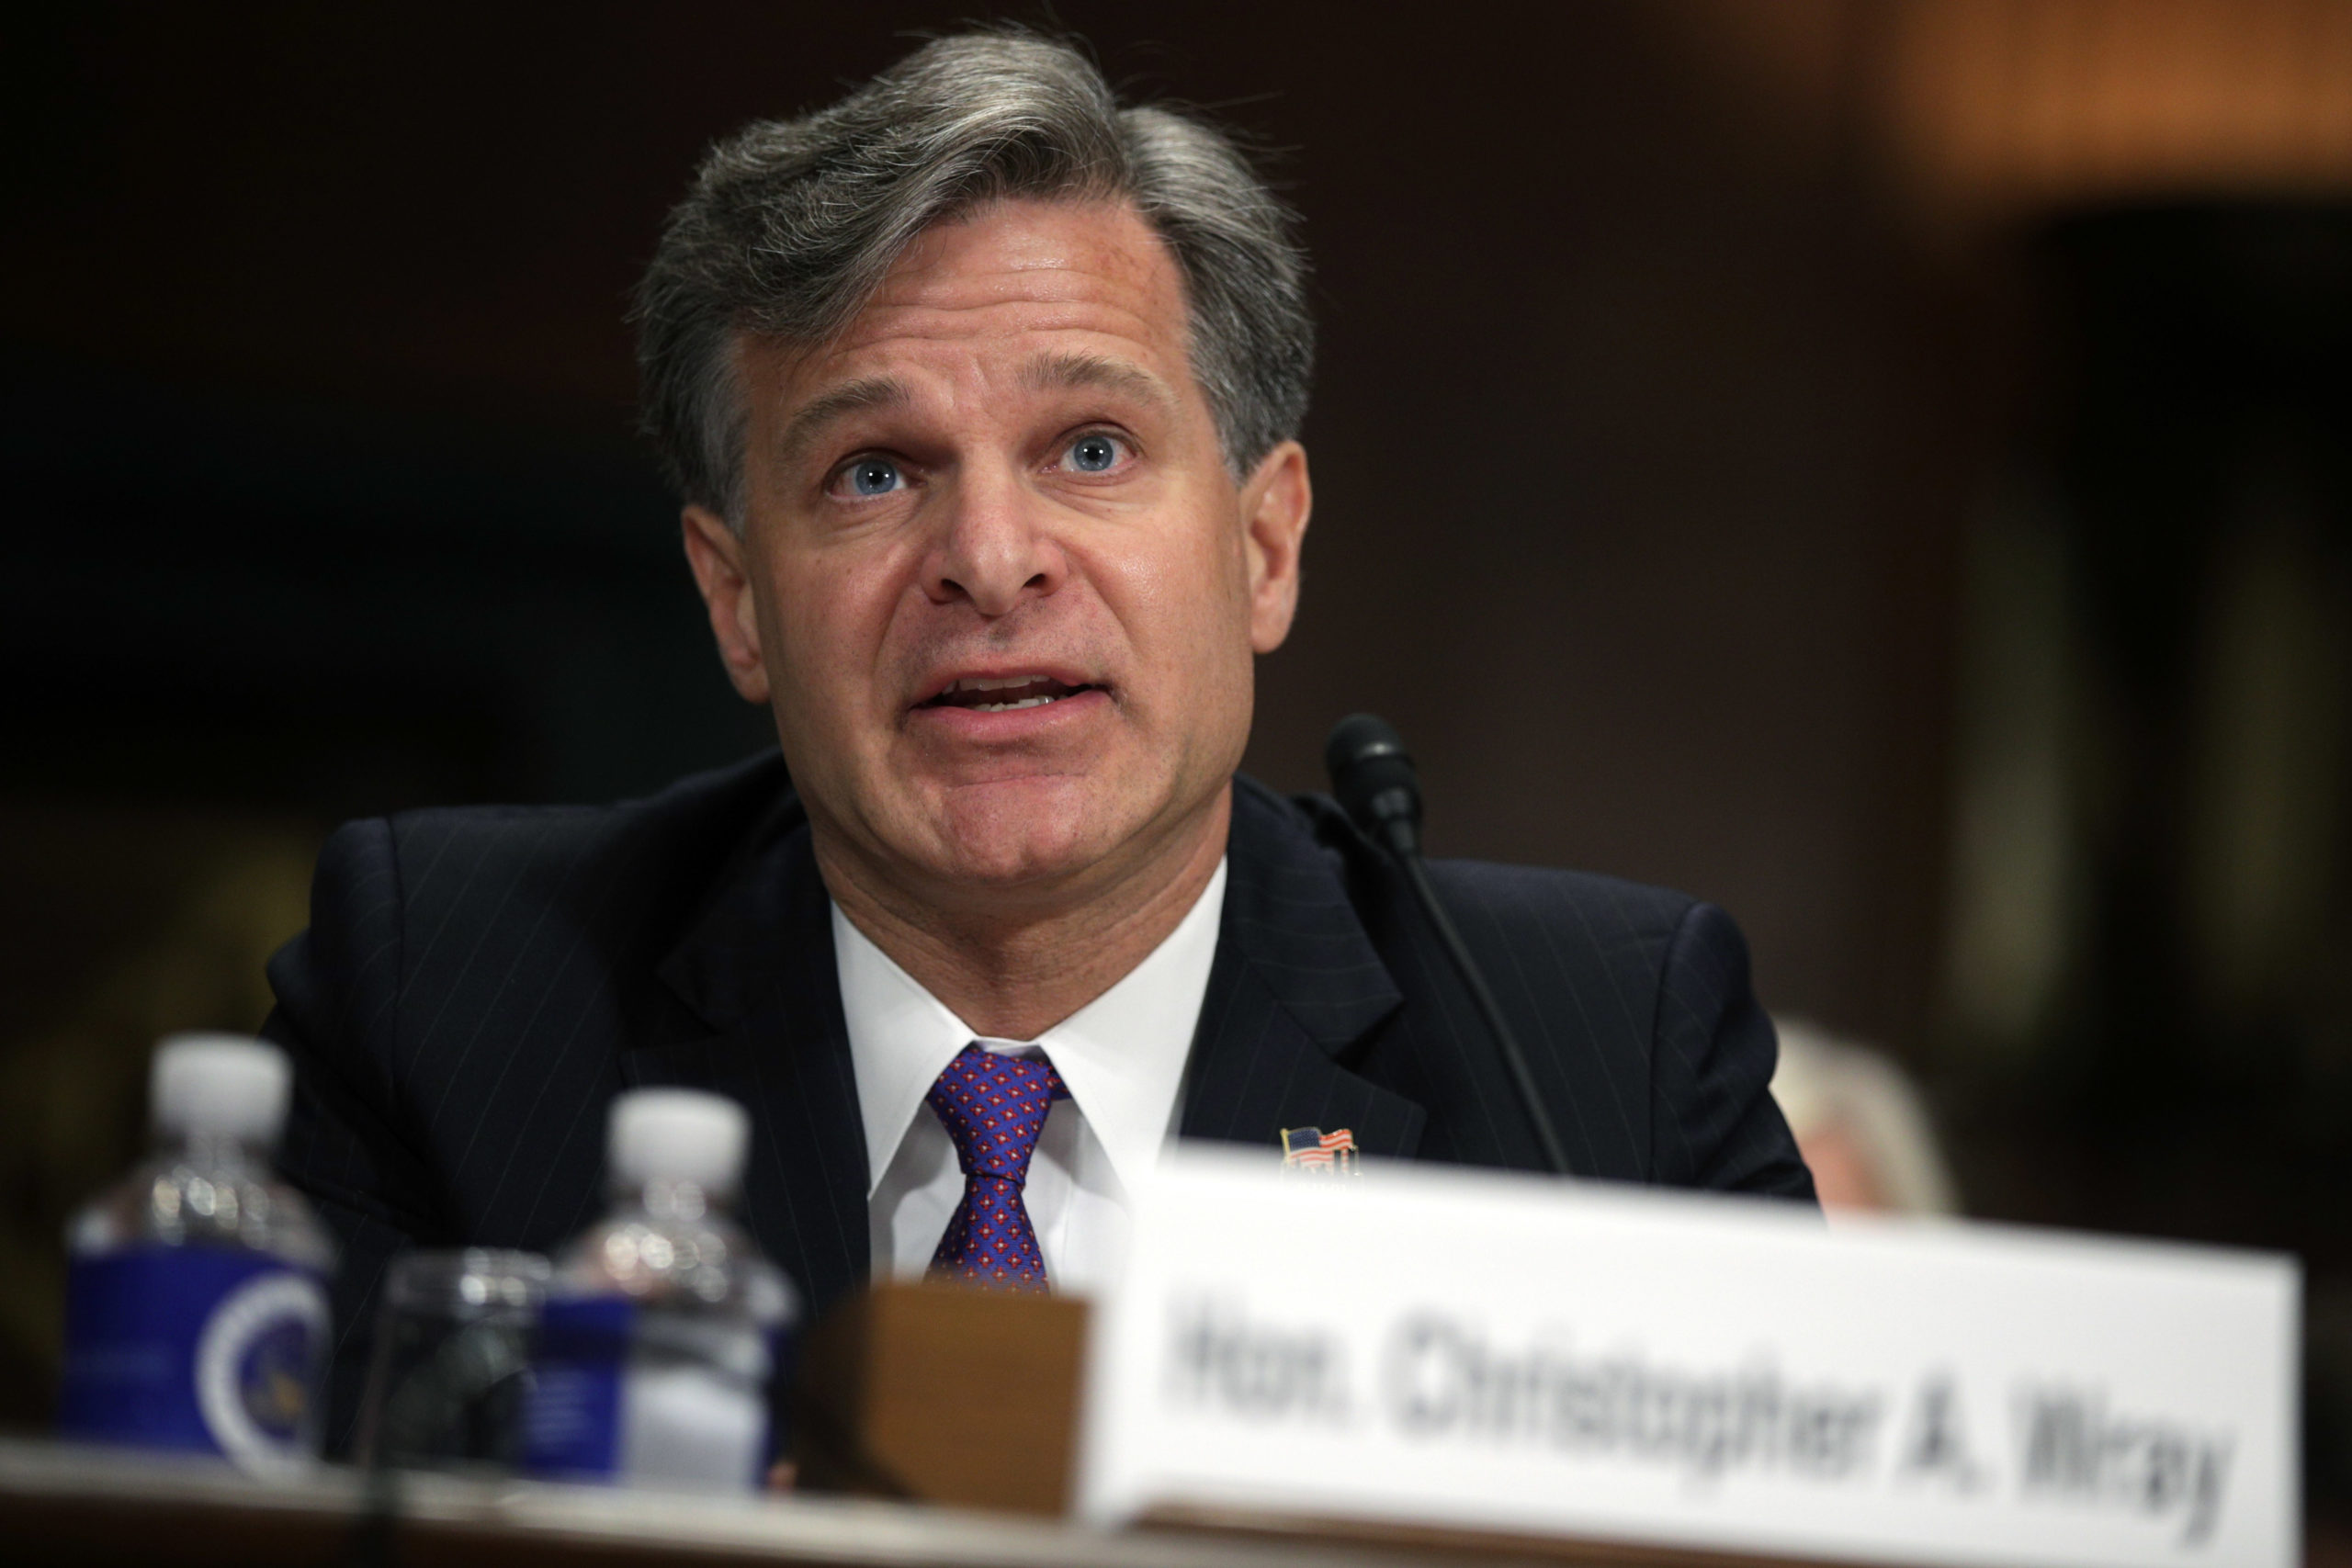 WASHINGTON, DC - JULY 12: FBI director nominee Christopher Wray testifies during his confirmation hearing before the Senate Judiciary Committee July 12, 2017 on Capitol Hill in Washington, DC. If confirmed, Wray will fill the position that has been left behind by former director James Comey who was fired by President Donald Trump about two months ago. (Photo by Alex Wong/Getty Images)